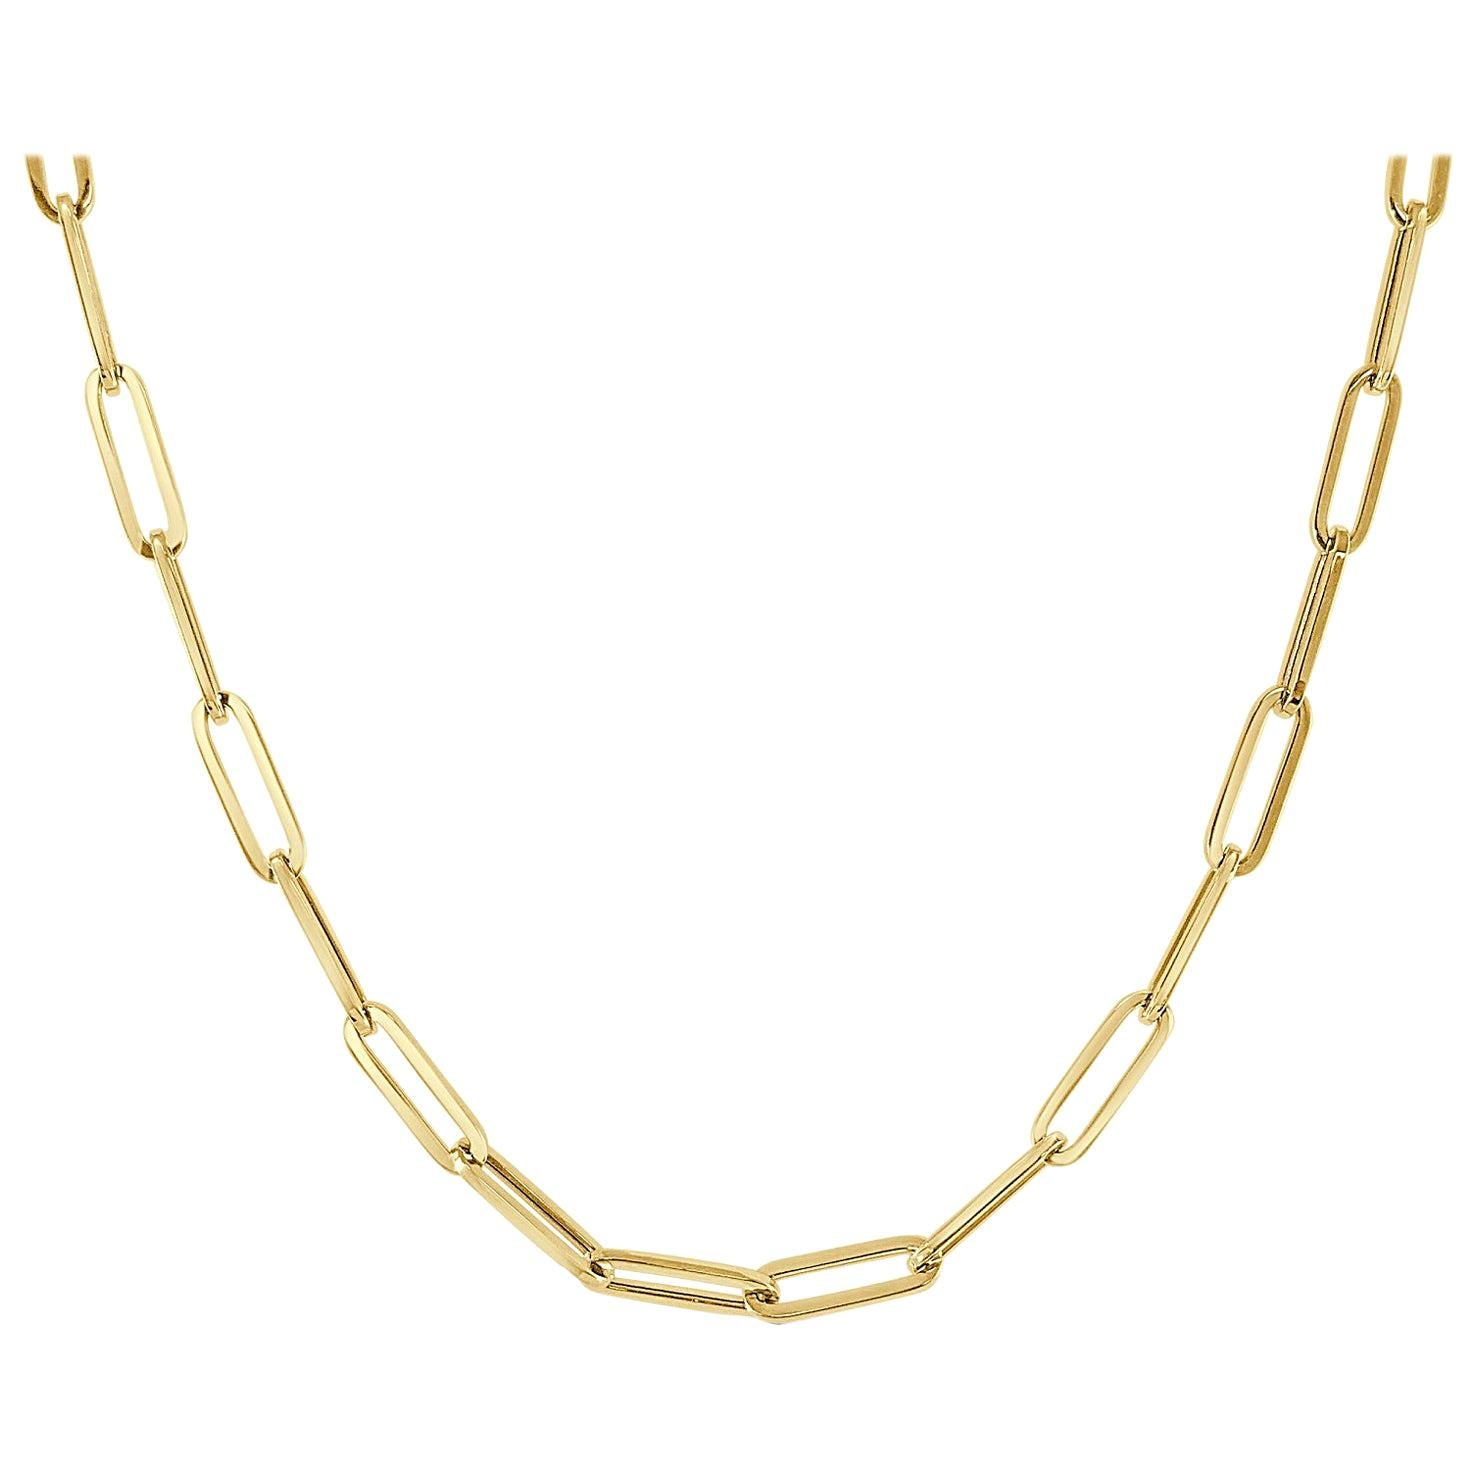 14 Karat Yellow Gold Paper Clip Link Chain Necklace, Made in Italy